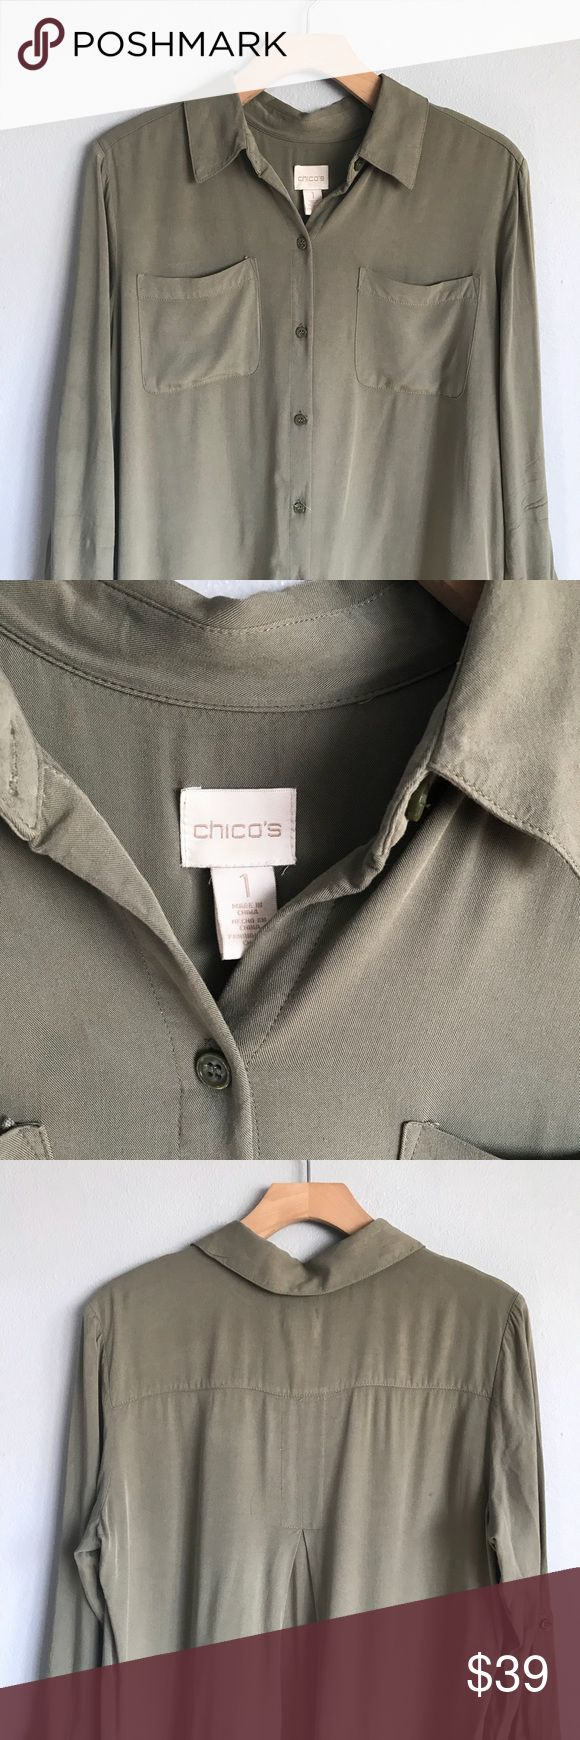 CHICOS Lightweight & Cool green long sleeve Great neutral color!❤️ Two pocket long sleeve top with roll up buttons on sleeves. Lightweight and cool. Perfect for layering!🙌🏼 Chico's size 1 = Medium or size 8 Chico's Tops Button Down Shirts